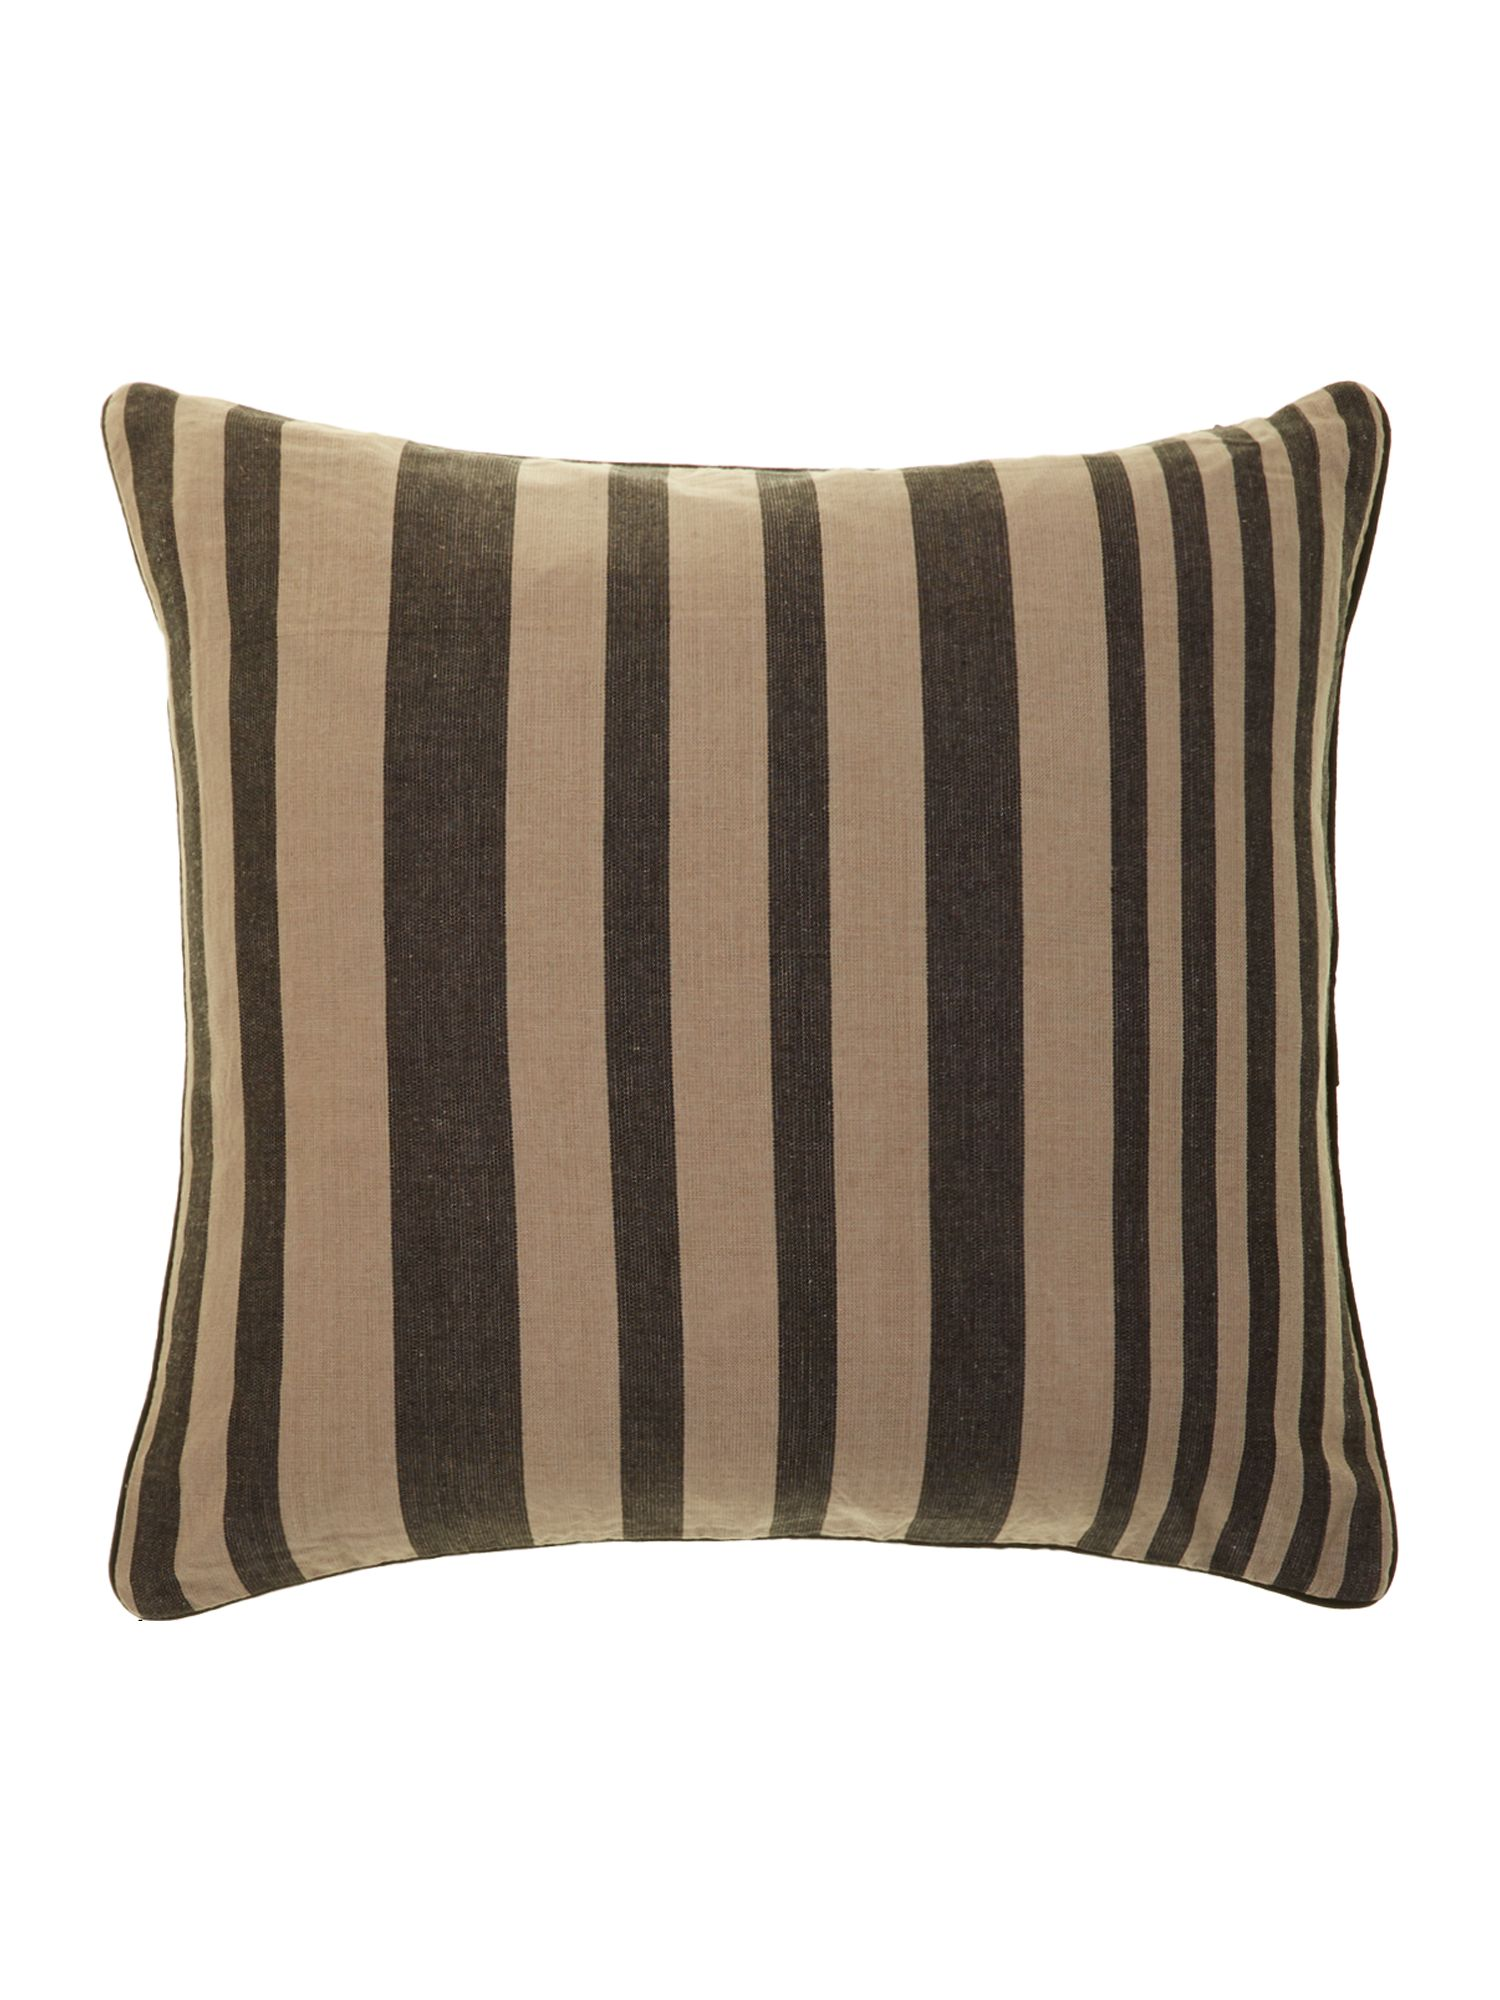 Lawson cushion in wheat stripe